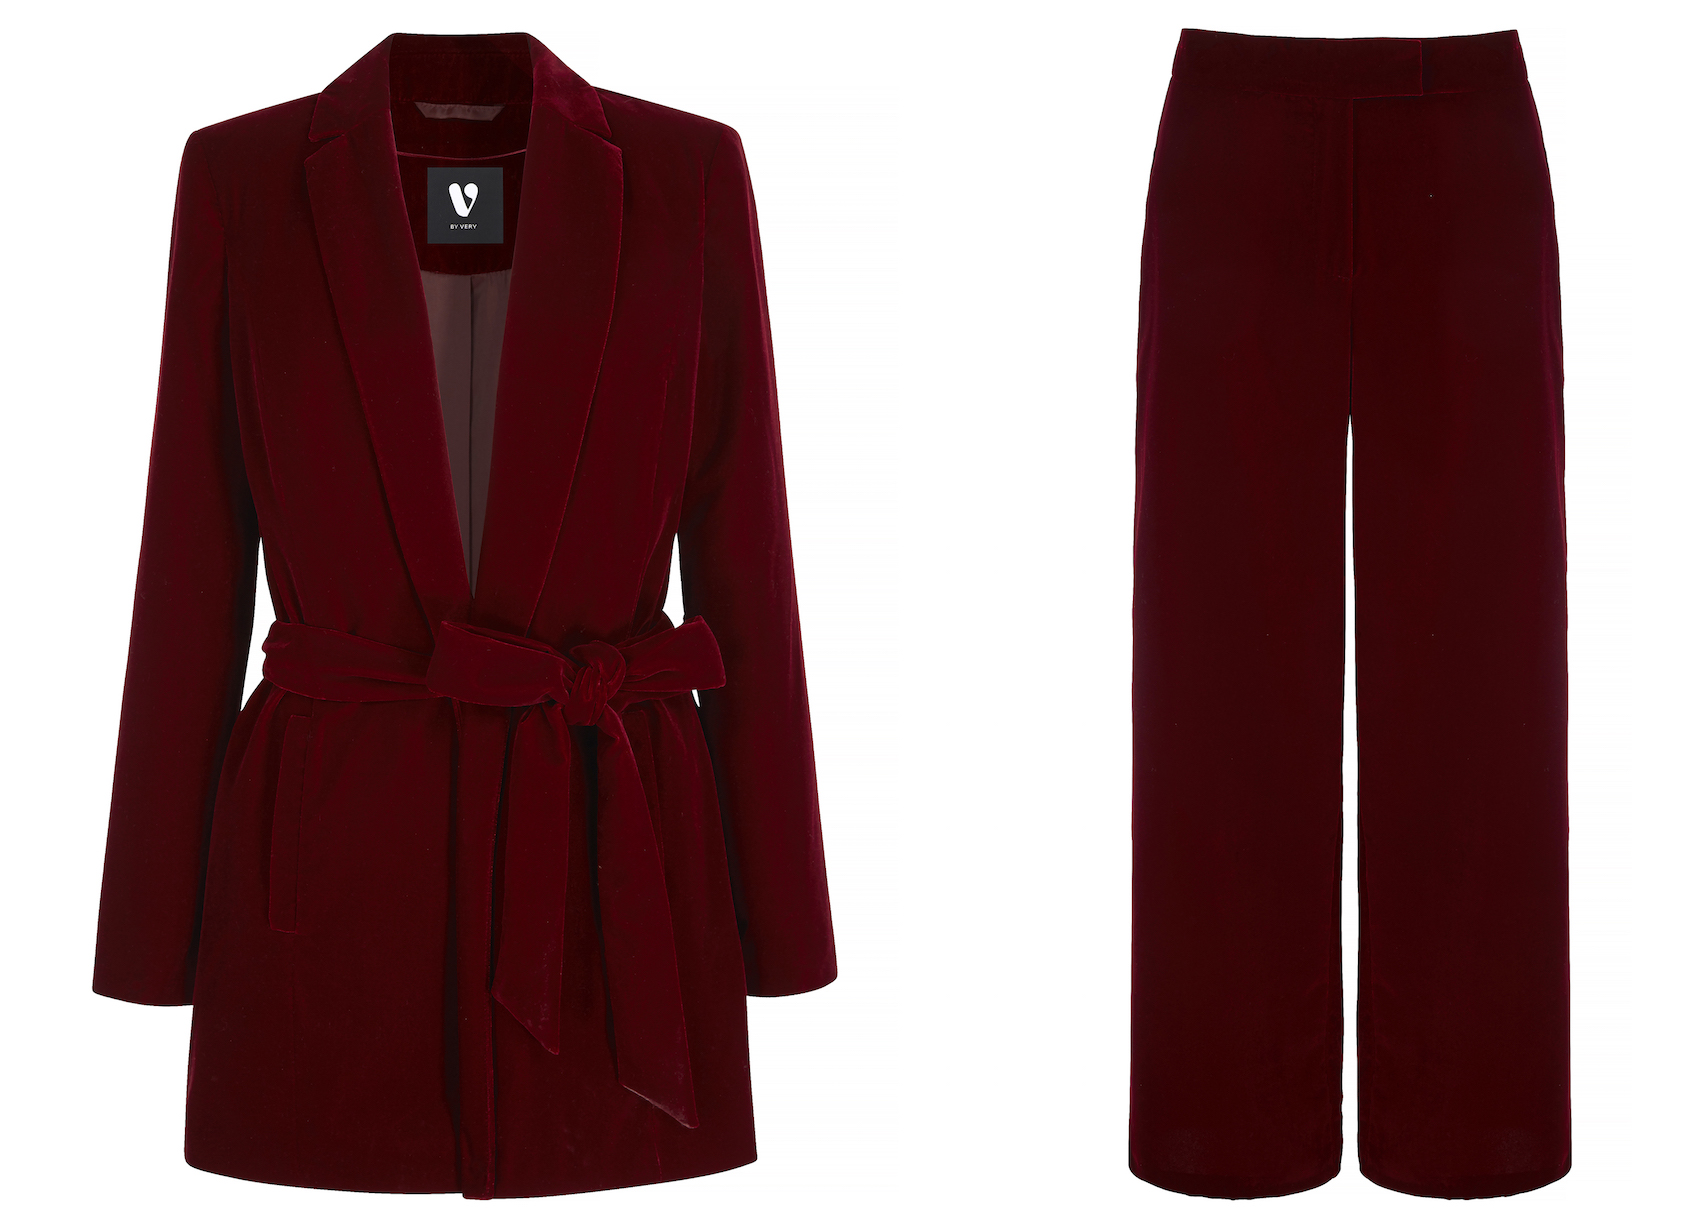 Burgundy Belted Velvet Suit Jacket